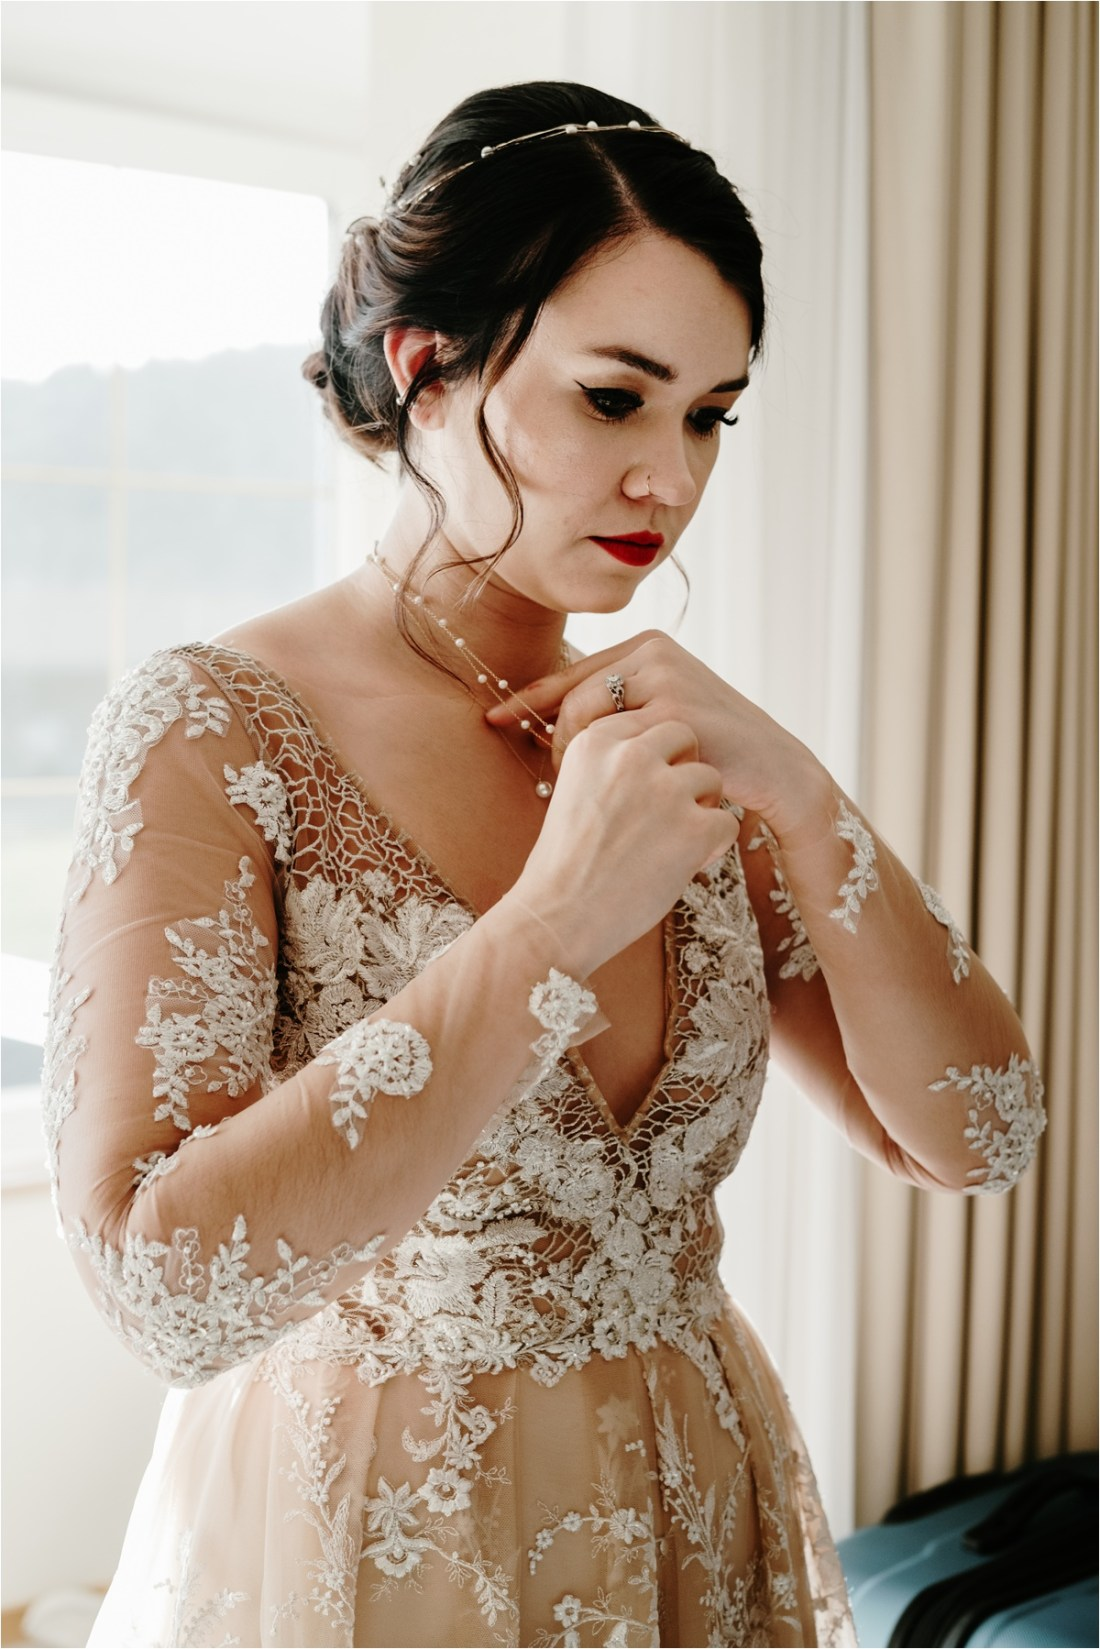 Great Gatsby inspired bridal look for this LGBT winter wedding in the Bavarian Alps. Photo by Wild Connections Photography